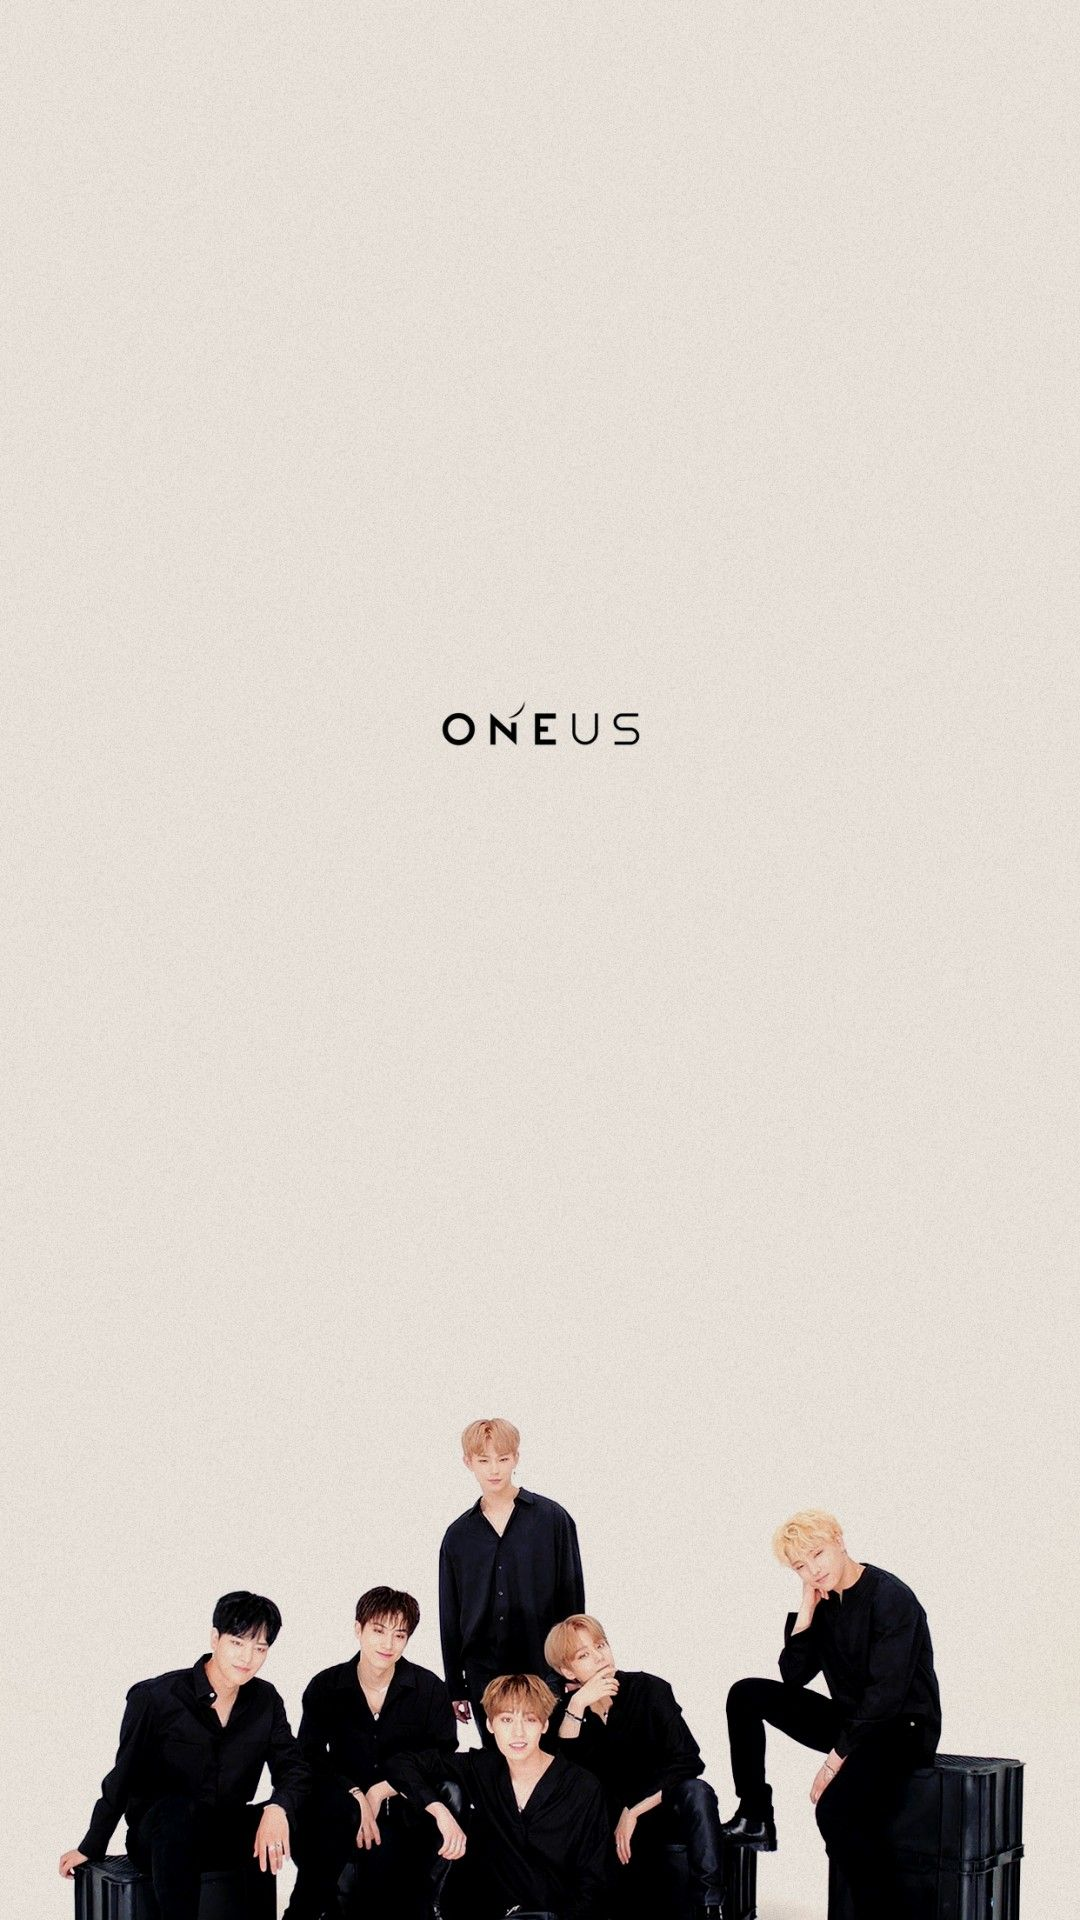 Pin By Rosiana Amelia On Oneus In 2019 Boy Groups Kpop